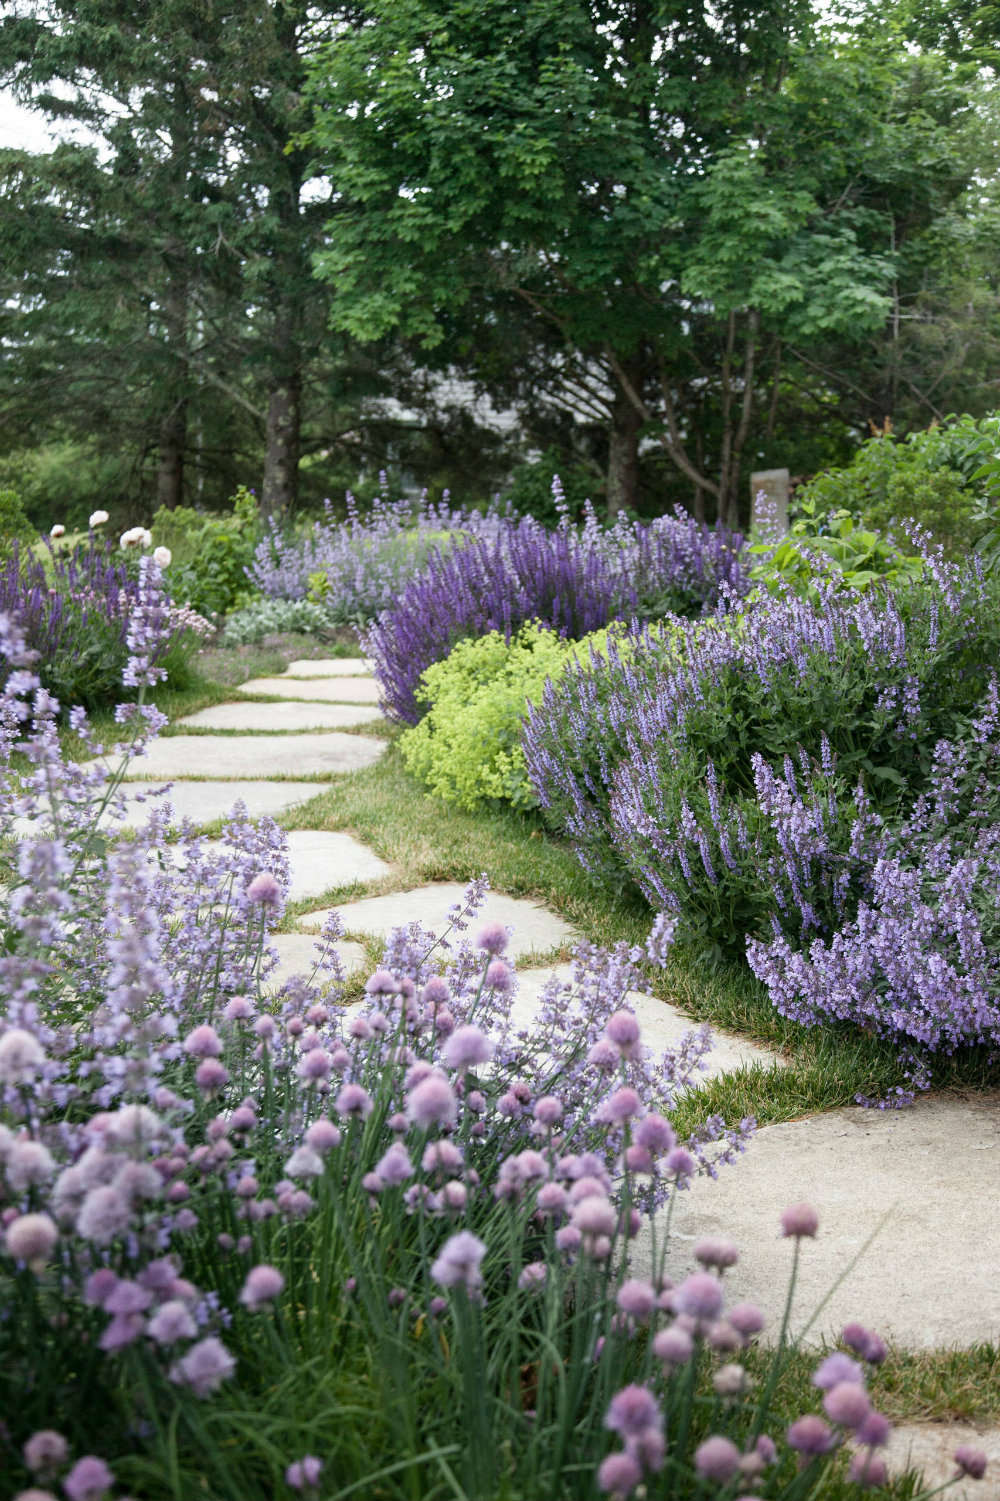 5 Of The Best Garden Trends For 2019 01 garden trends for 2019 5 Of The Best Garden Trends For 2019 5 Of The Best Garden Trends For 2019 01